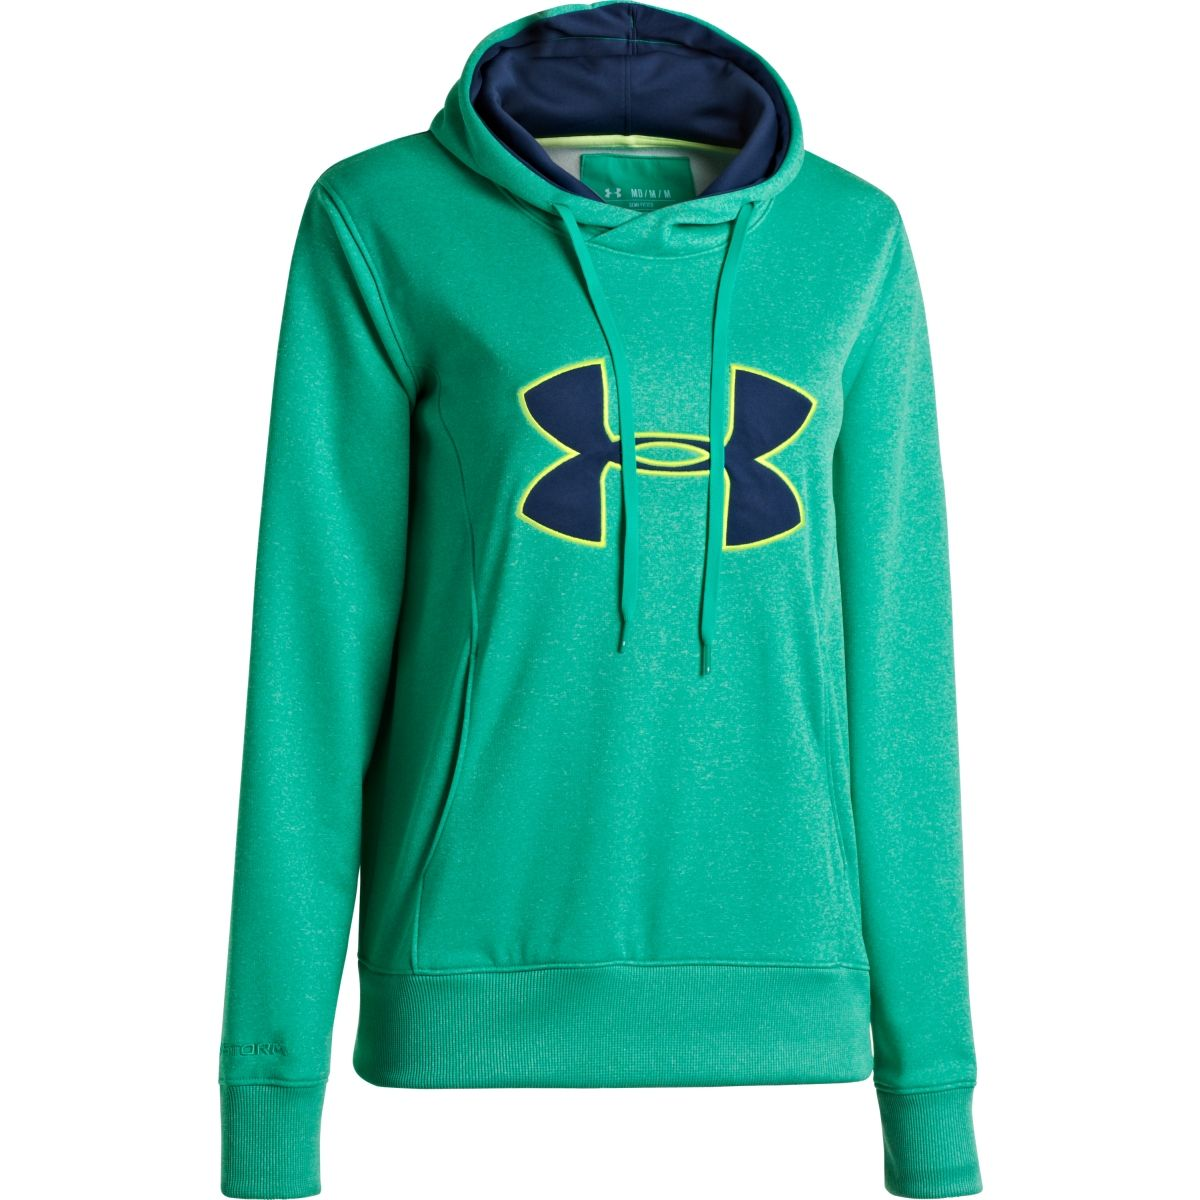 Under Armour Sweatshirts Womens Xxl - Long Sweater Jacket